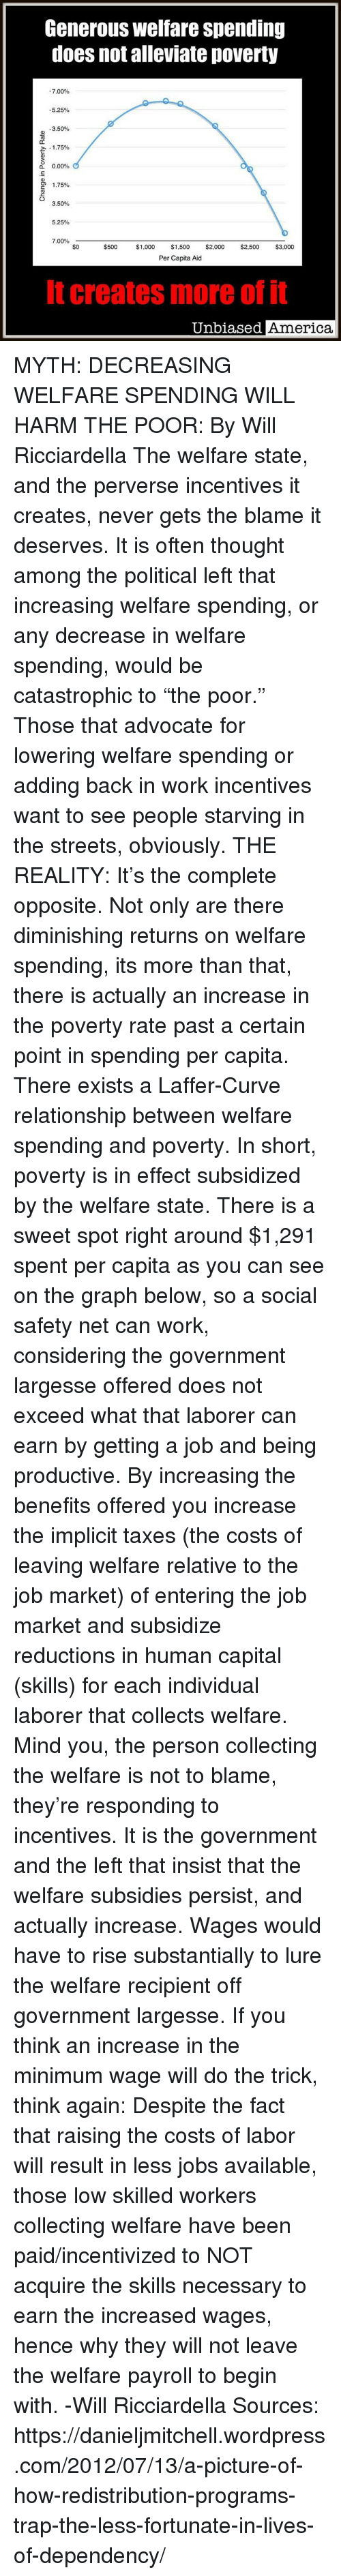 the rich benefit more from government aid than the poor Anywhere in the world, there is a gap between the haves and the have-nots, the rich and the poor at the local level, this is obvious a single neighborhood can.